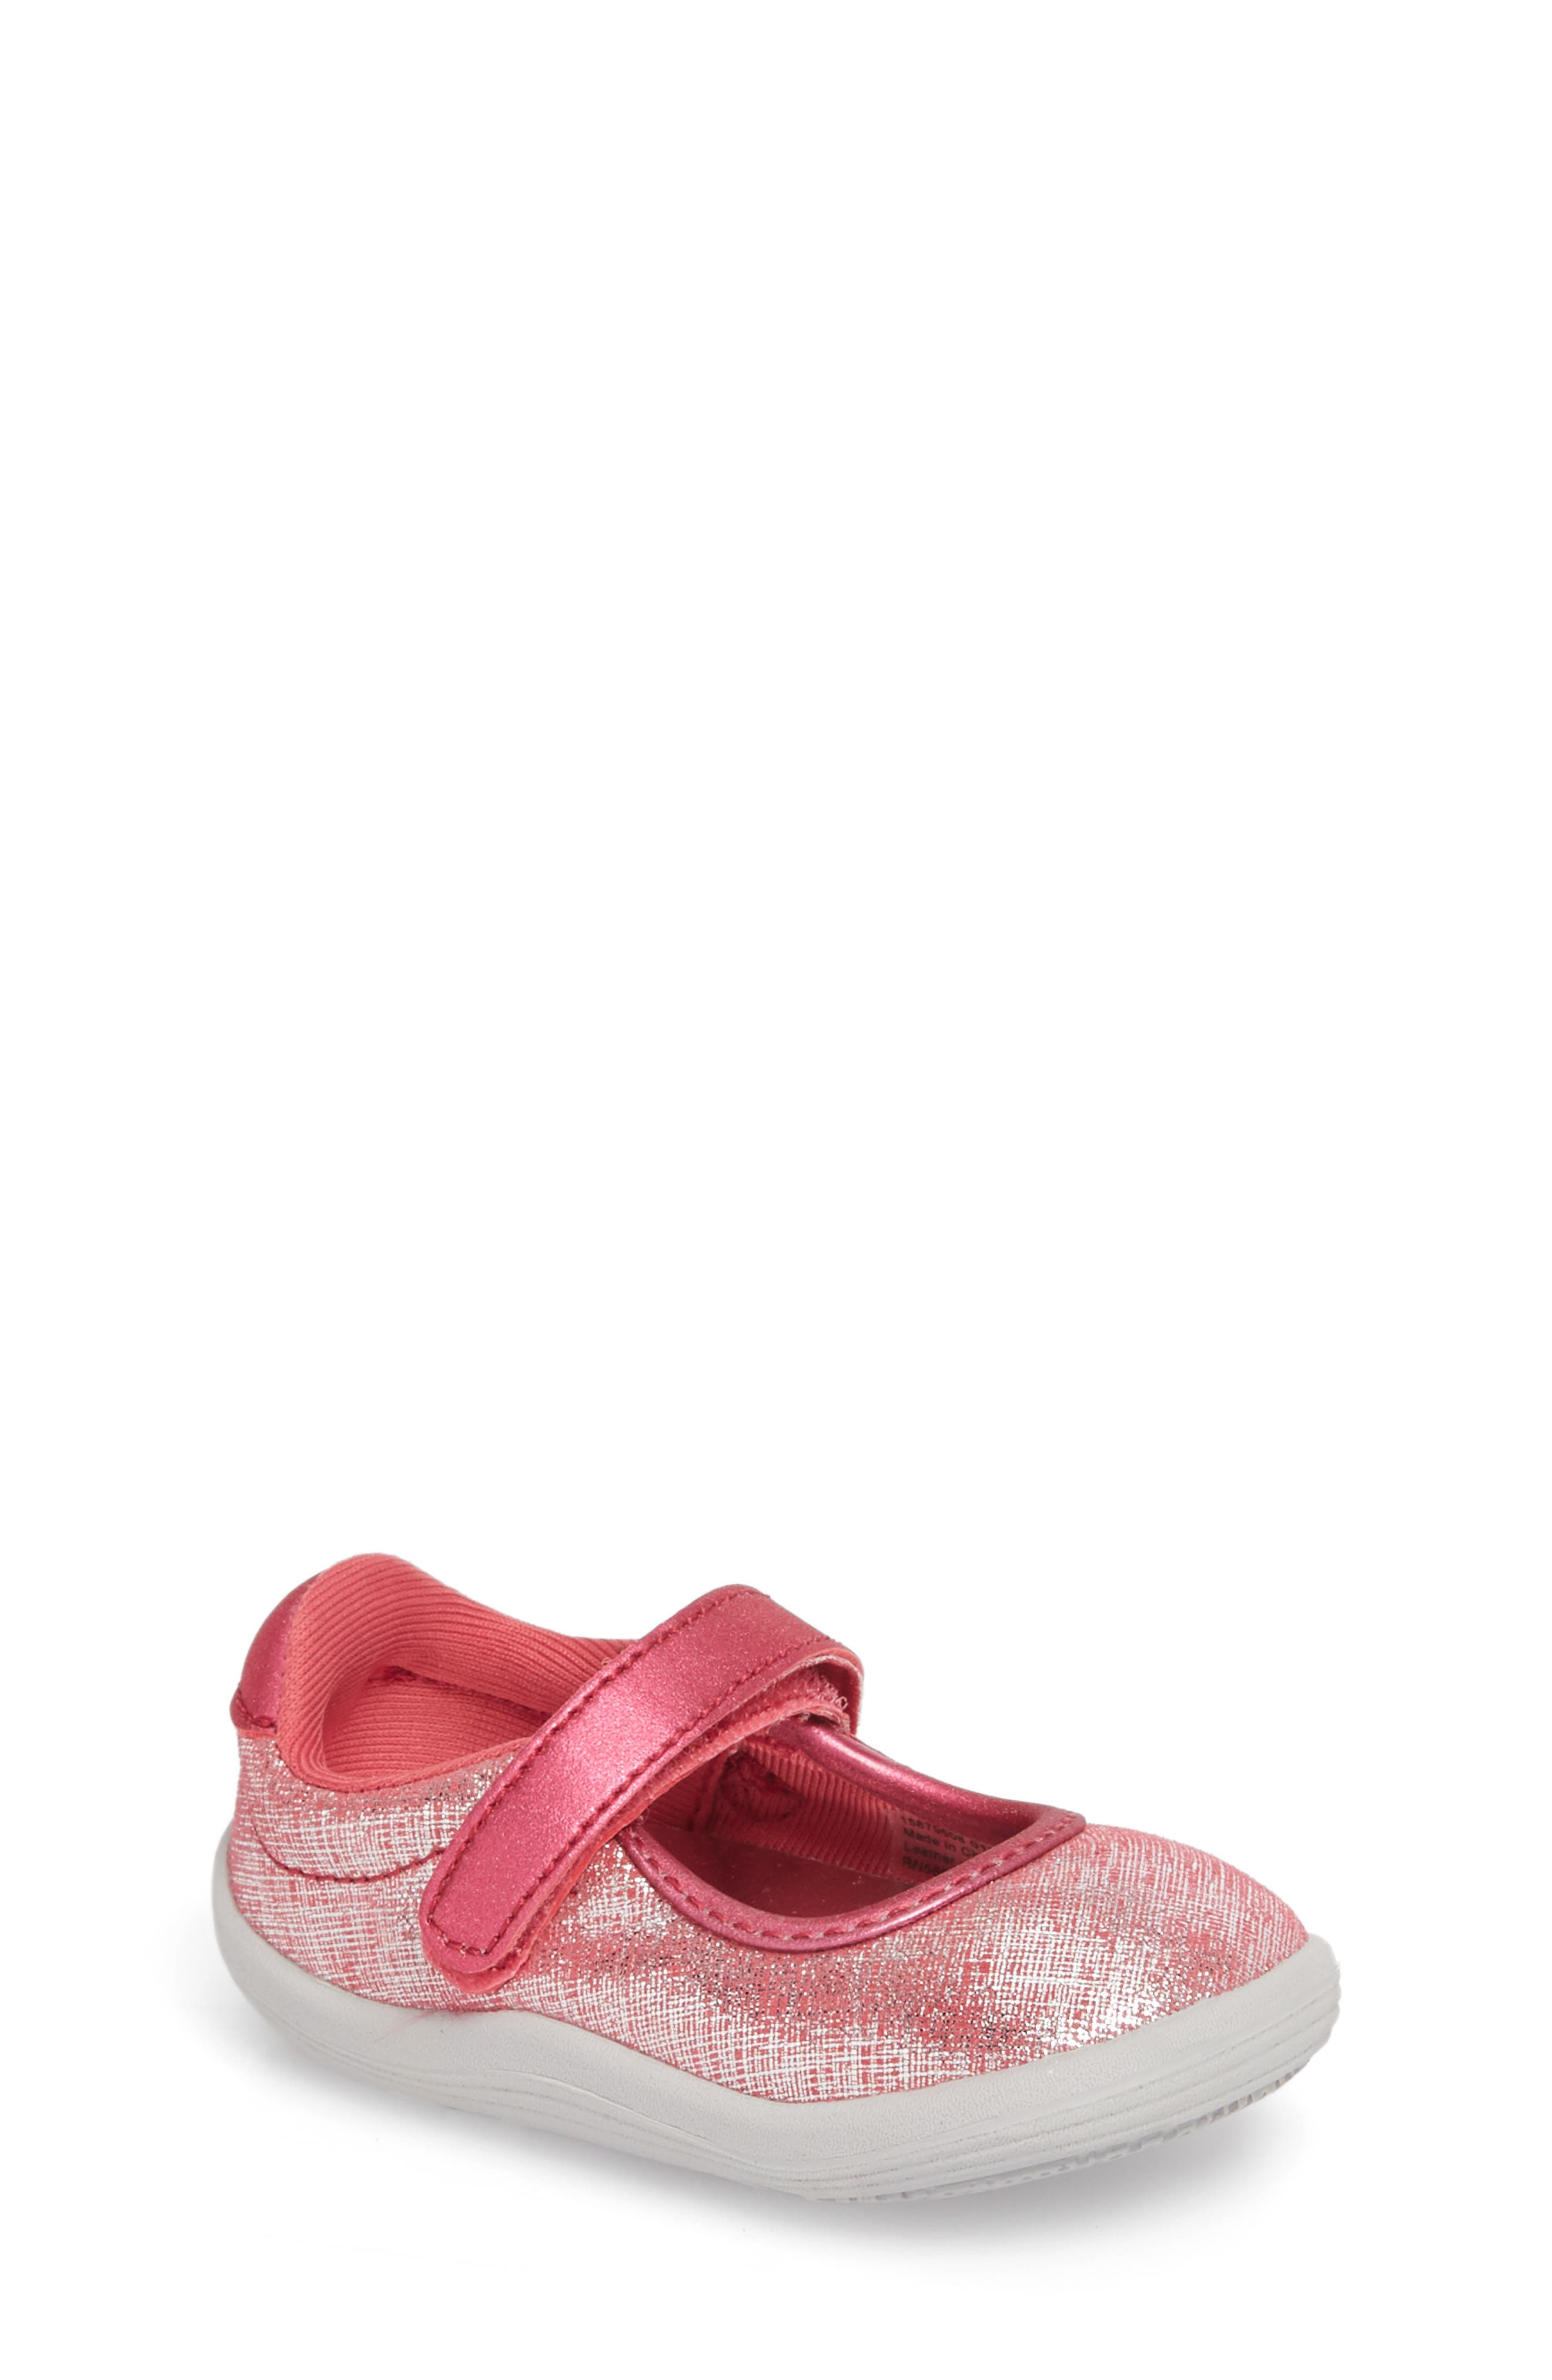 Tucker + Tate Nora Metallic Mary Jane Sneaker (Baby, Walker & Toddler)